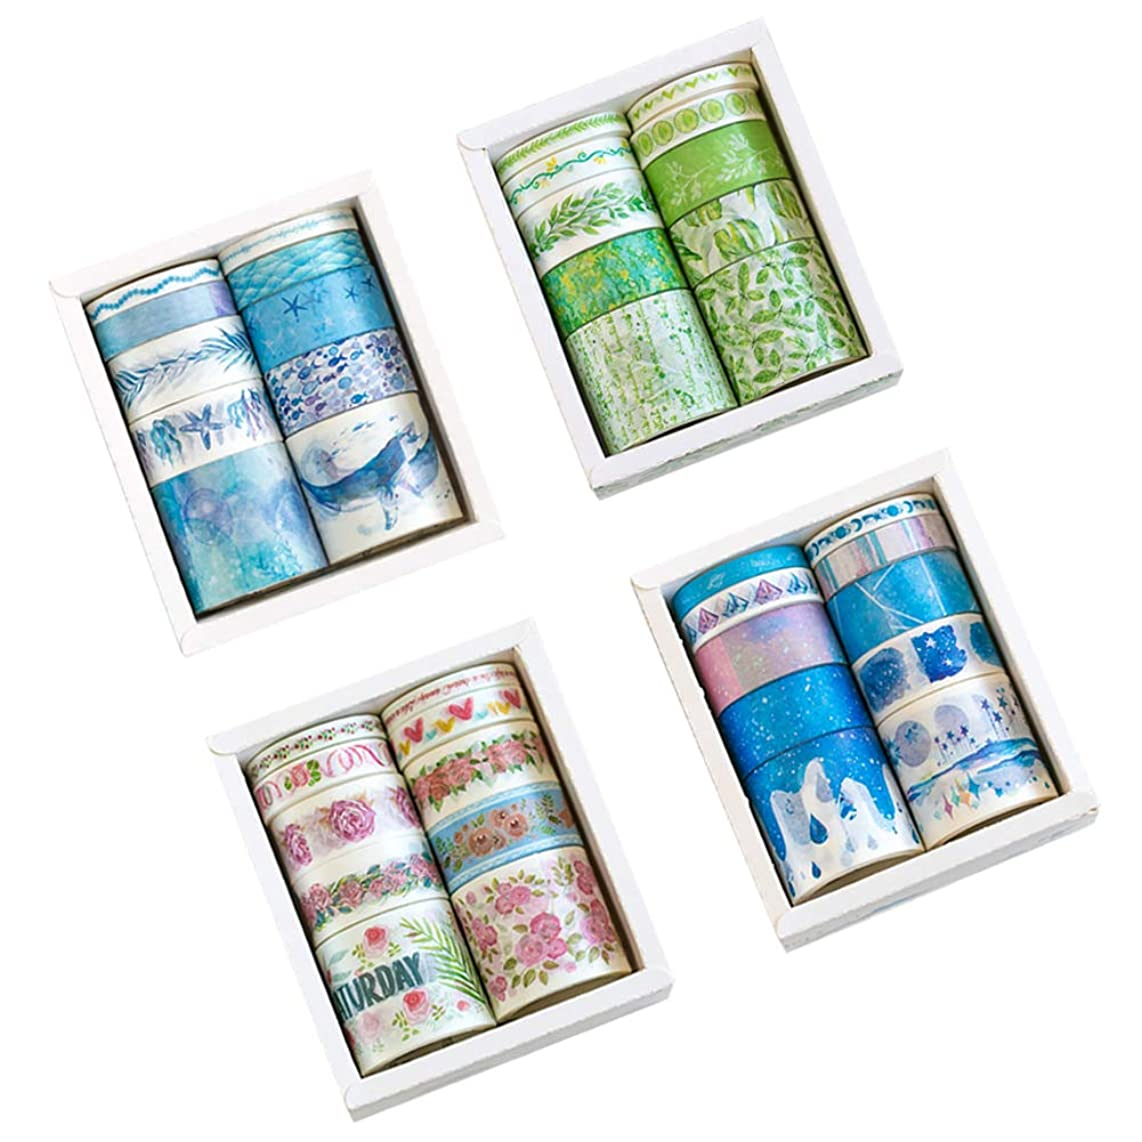 Masking Washi Tape Set (4 Box, Assorted 40 Rolls) Whale Jellyfish Starfish Water Grass Moon Phase Starlight Planet for Scrapbooking Journal Planner Album Diary Book DIY Decorative Label Sticker (B)